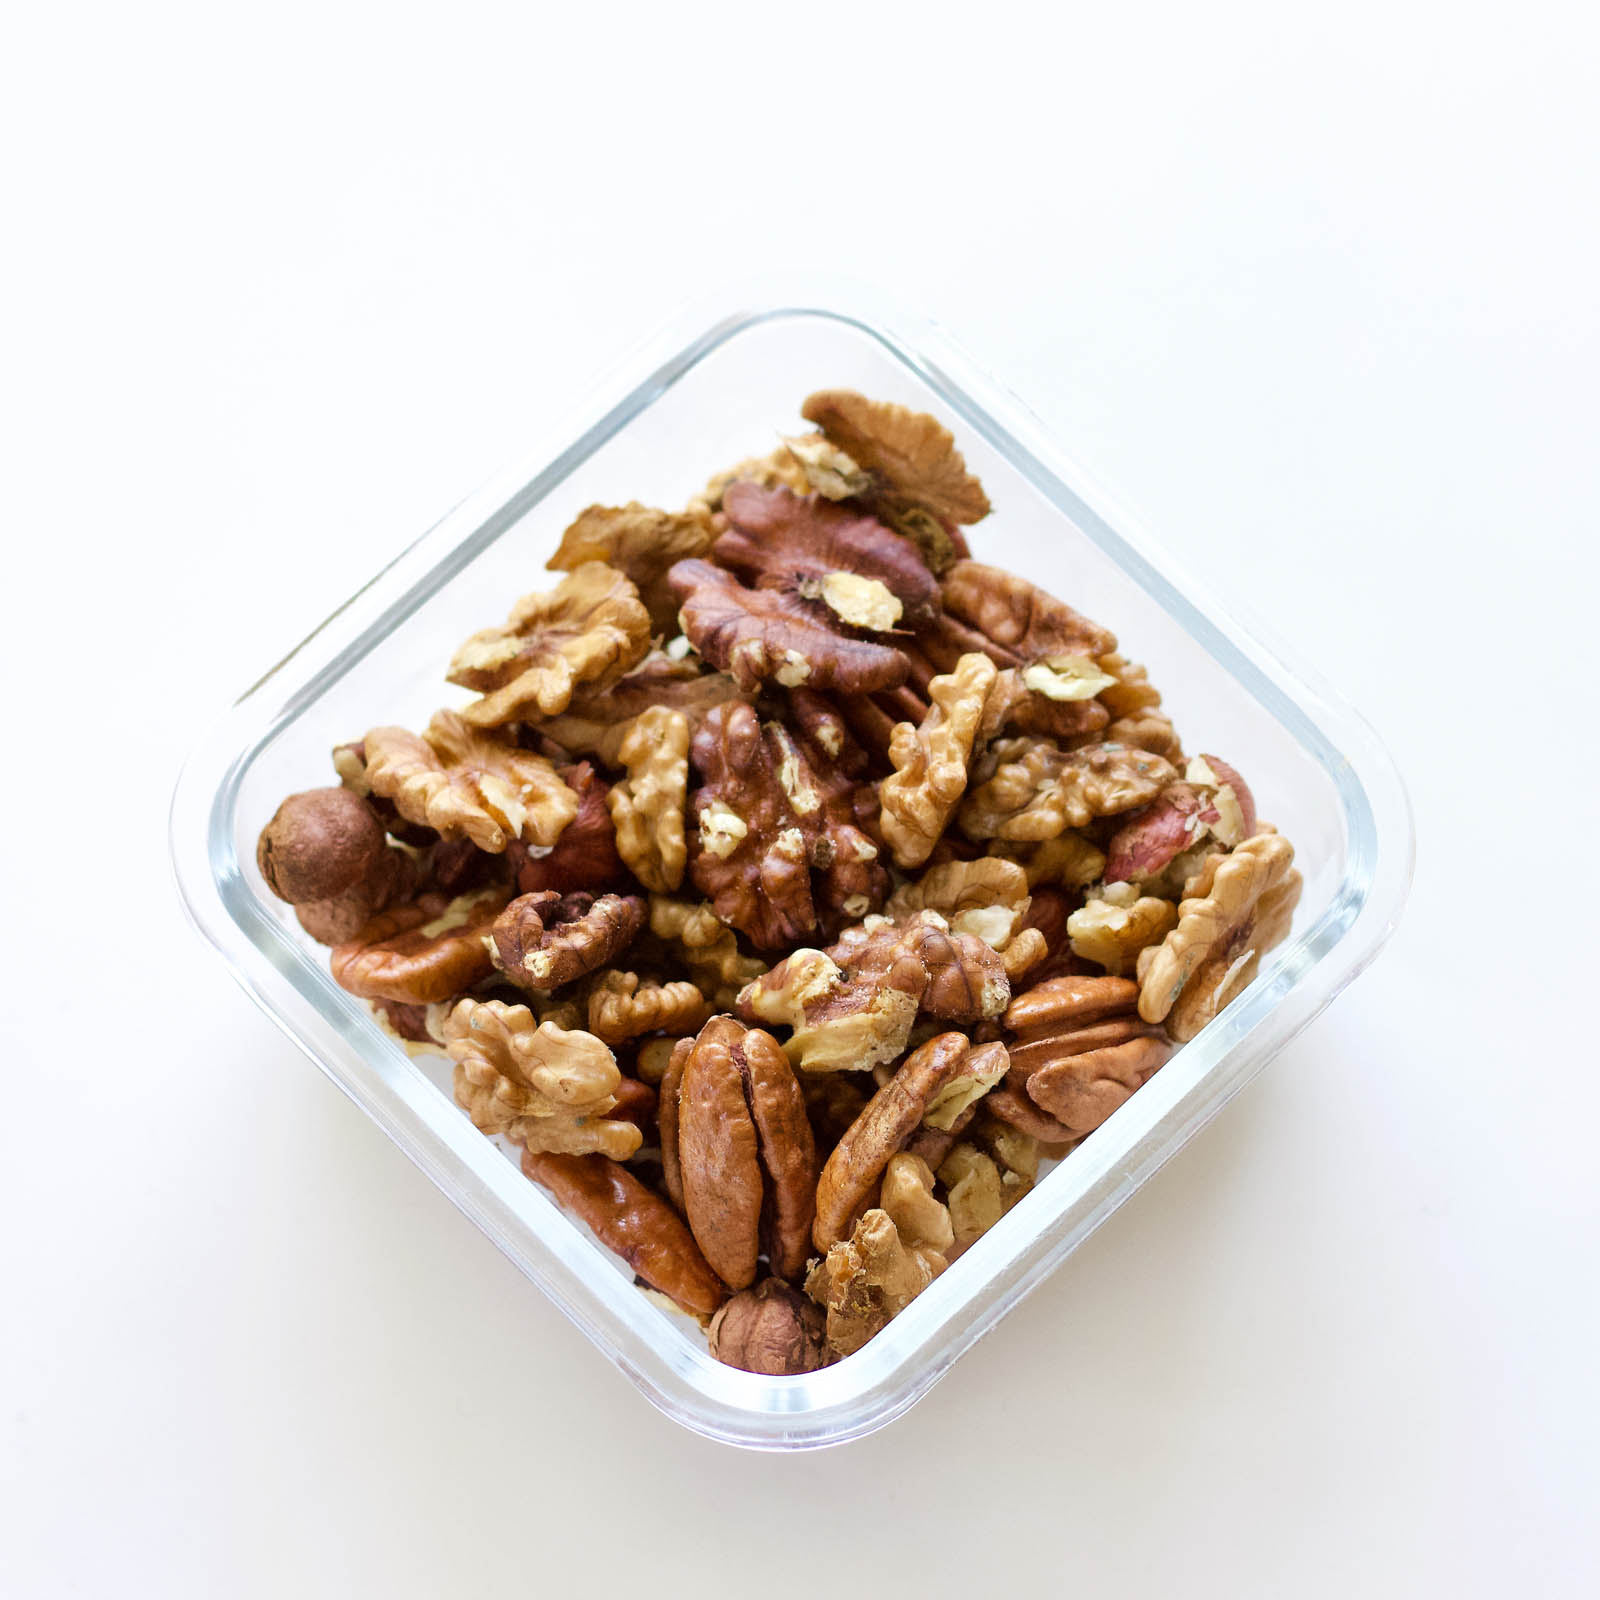 Walnuts, pecans and hazelnuts in a square glass bowl.